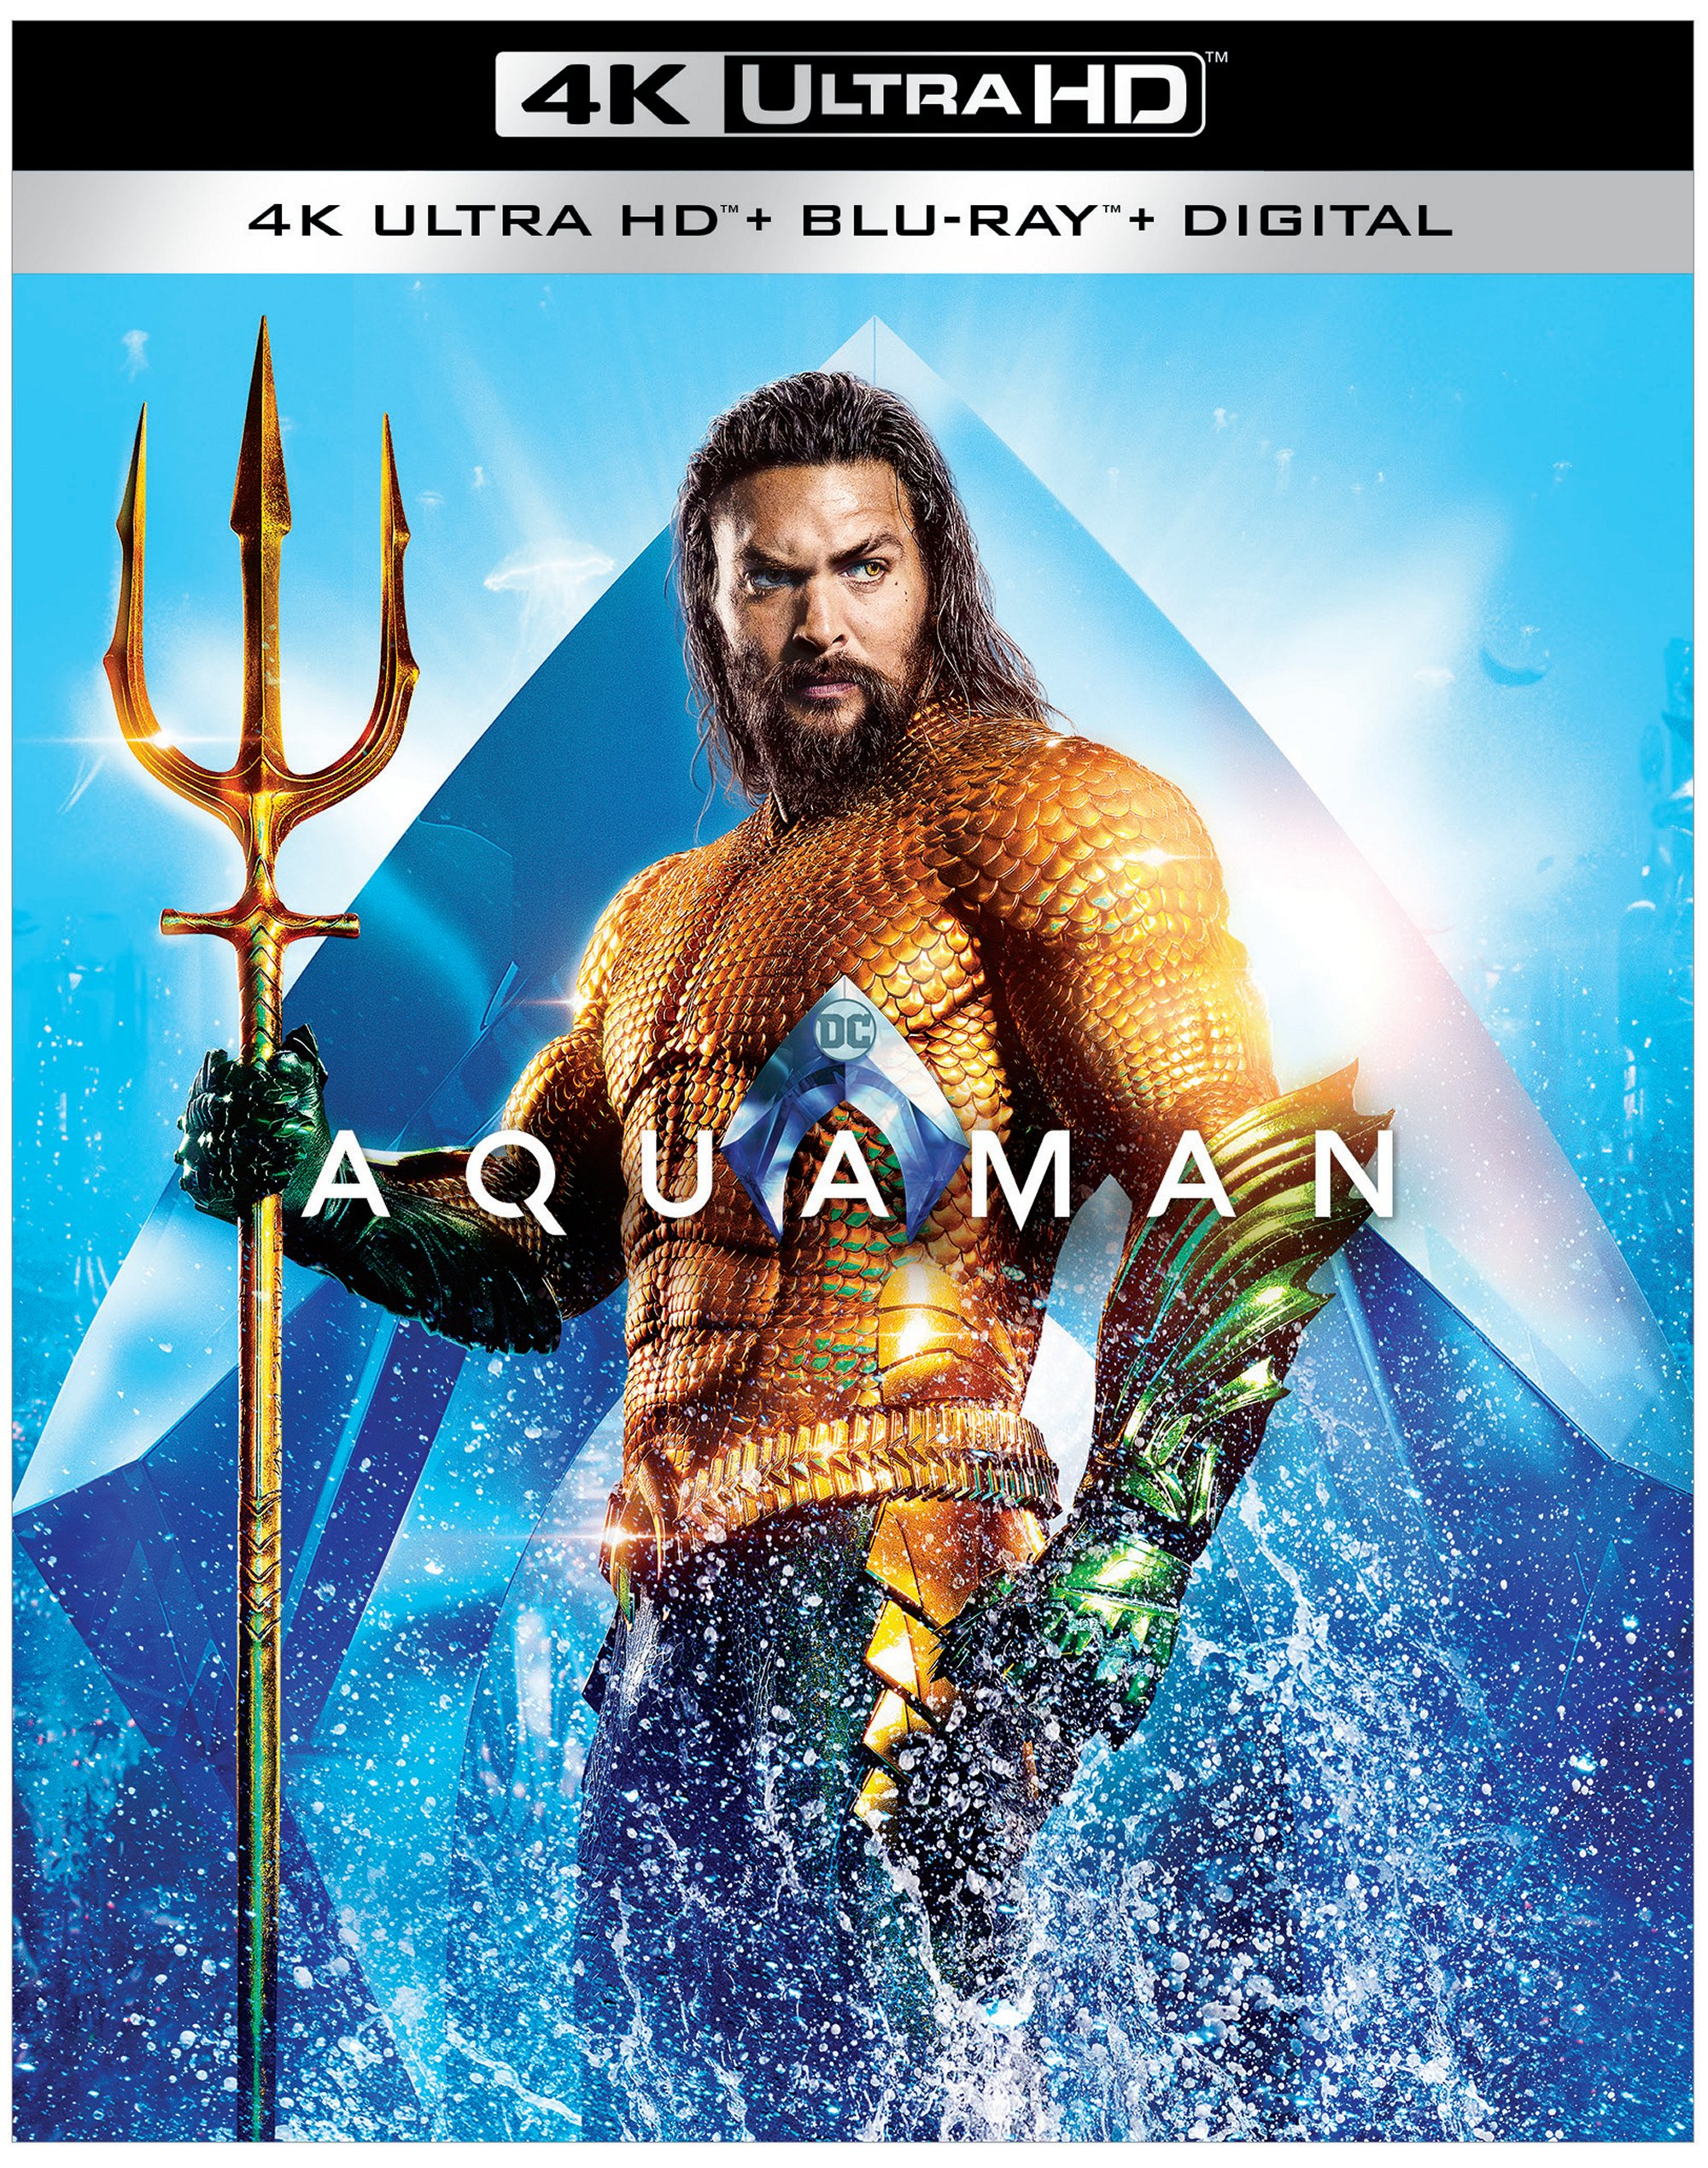 Aquaman home video release dates announced for Blu-ray and digital